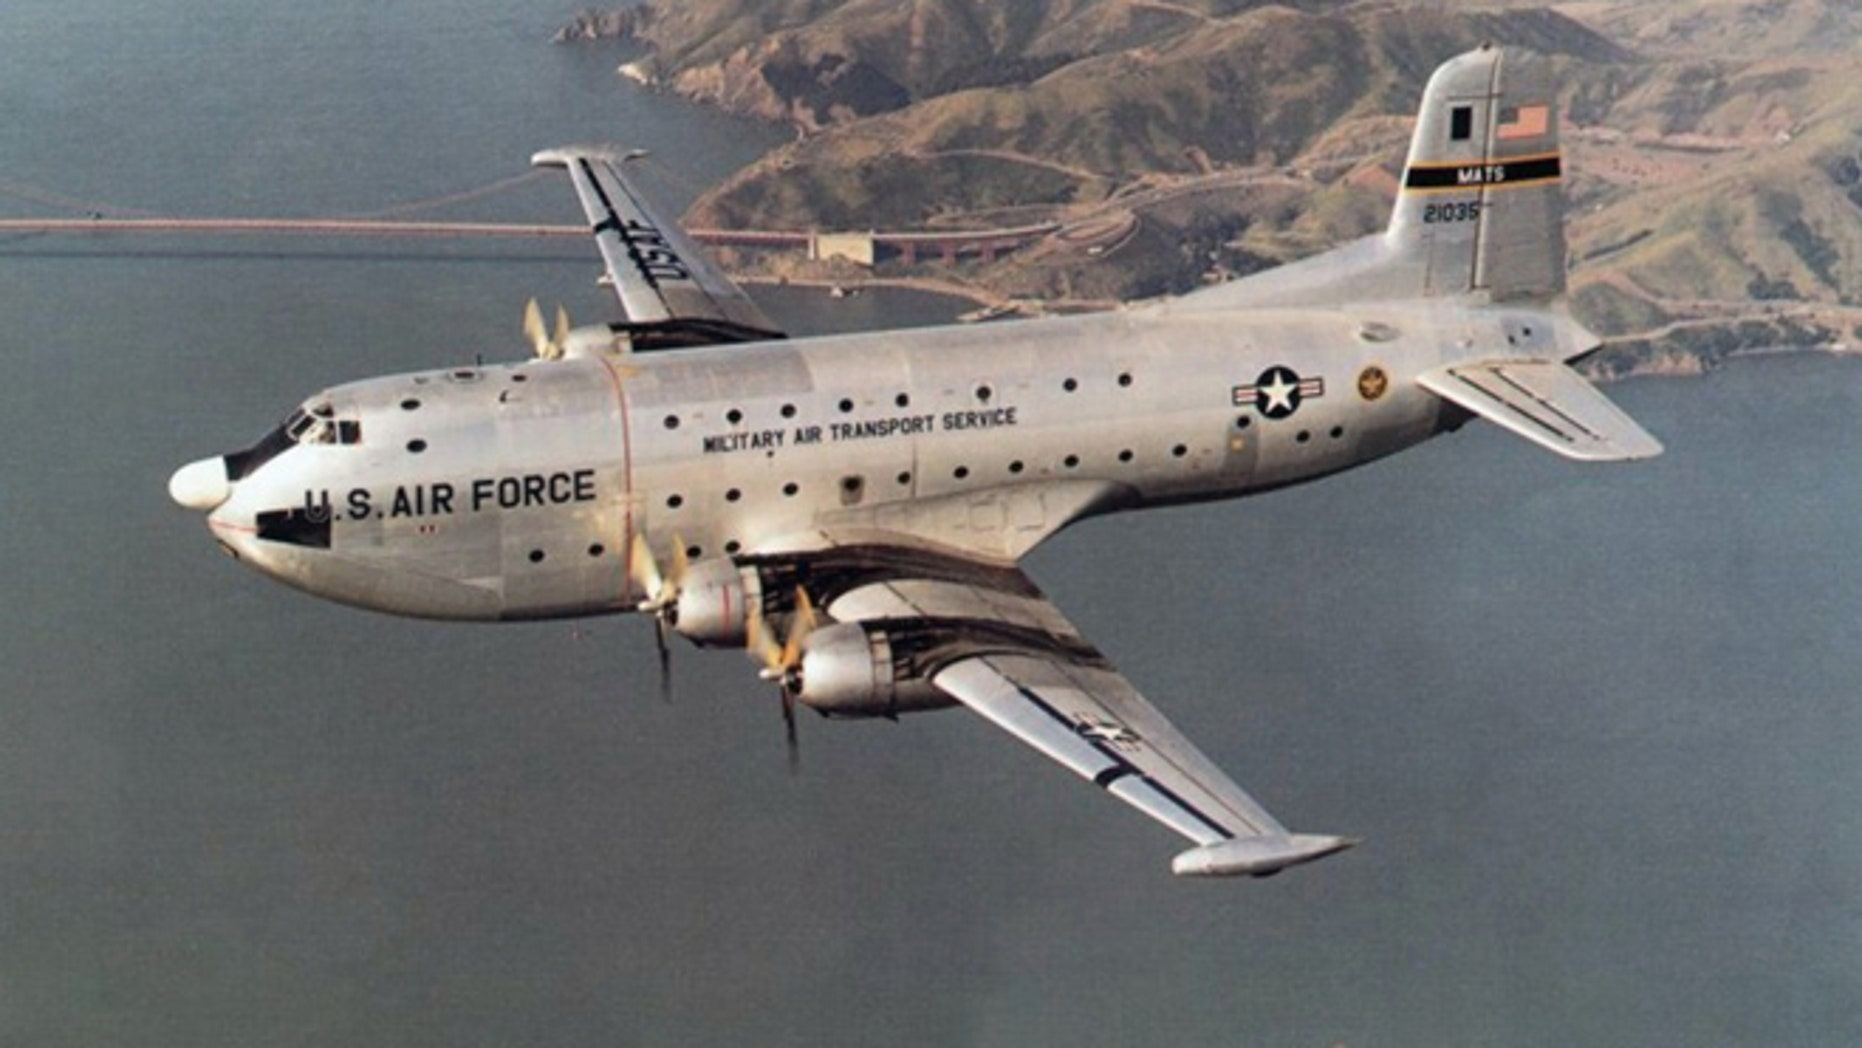 FILE: Undated: This image provided by the U.S. Air Force shows a C-124A Globemaster cargo aircraft. (AP/U.S. Air Force)